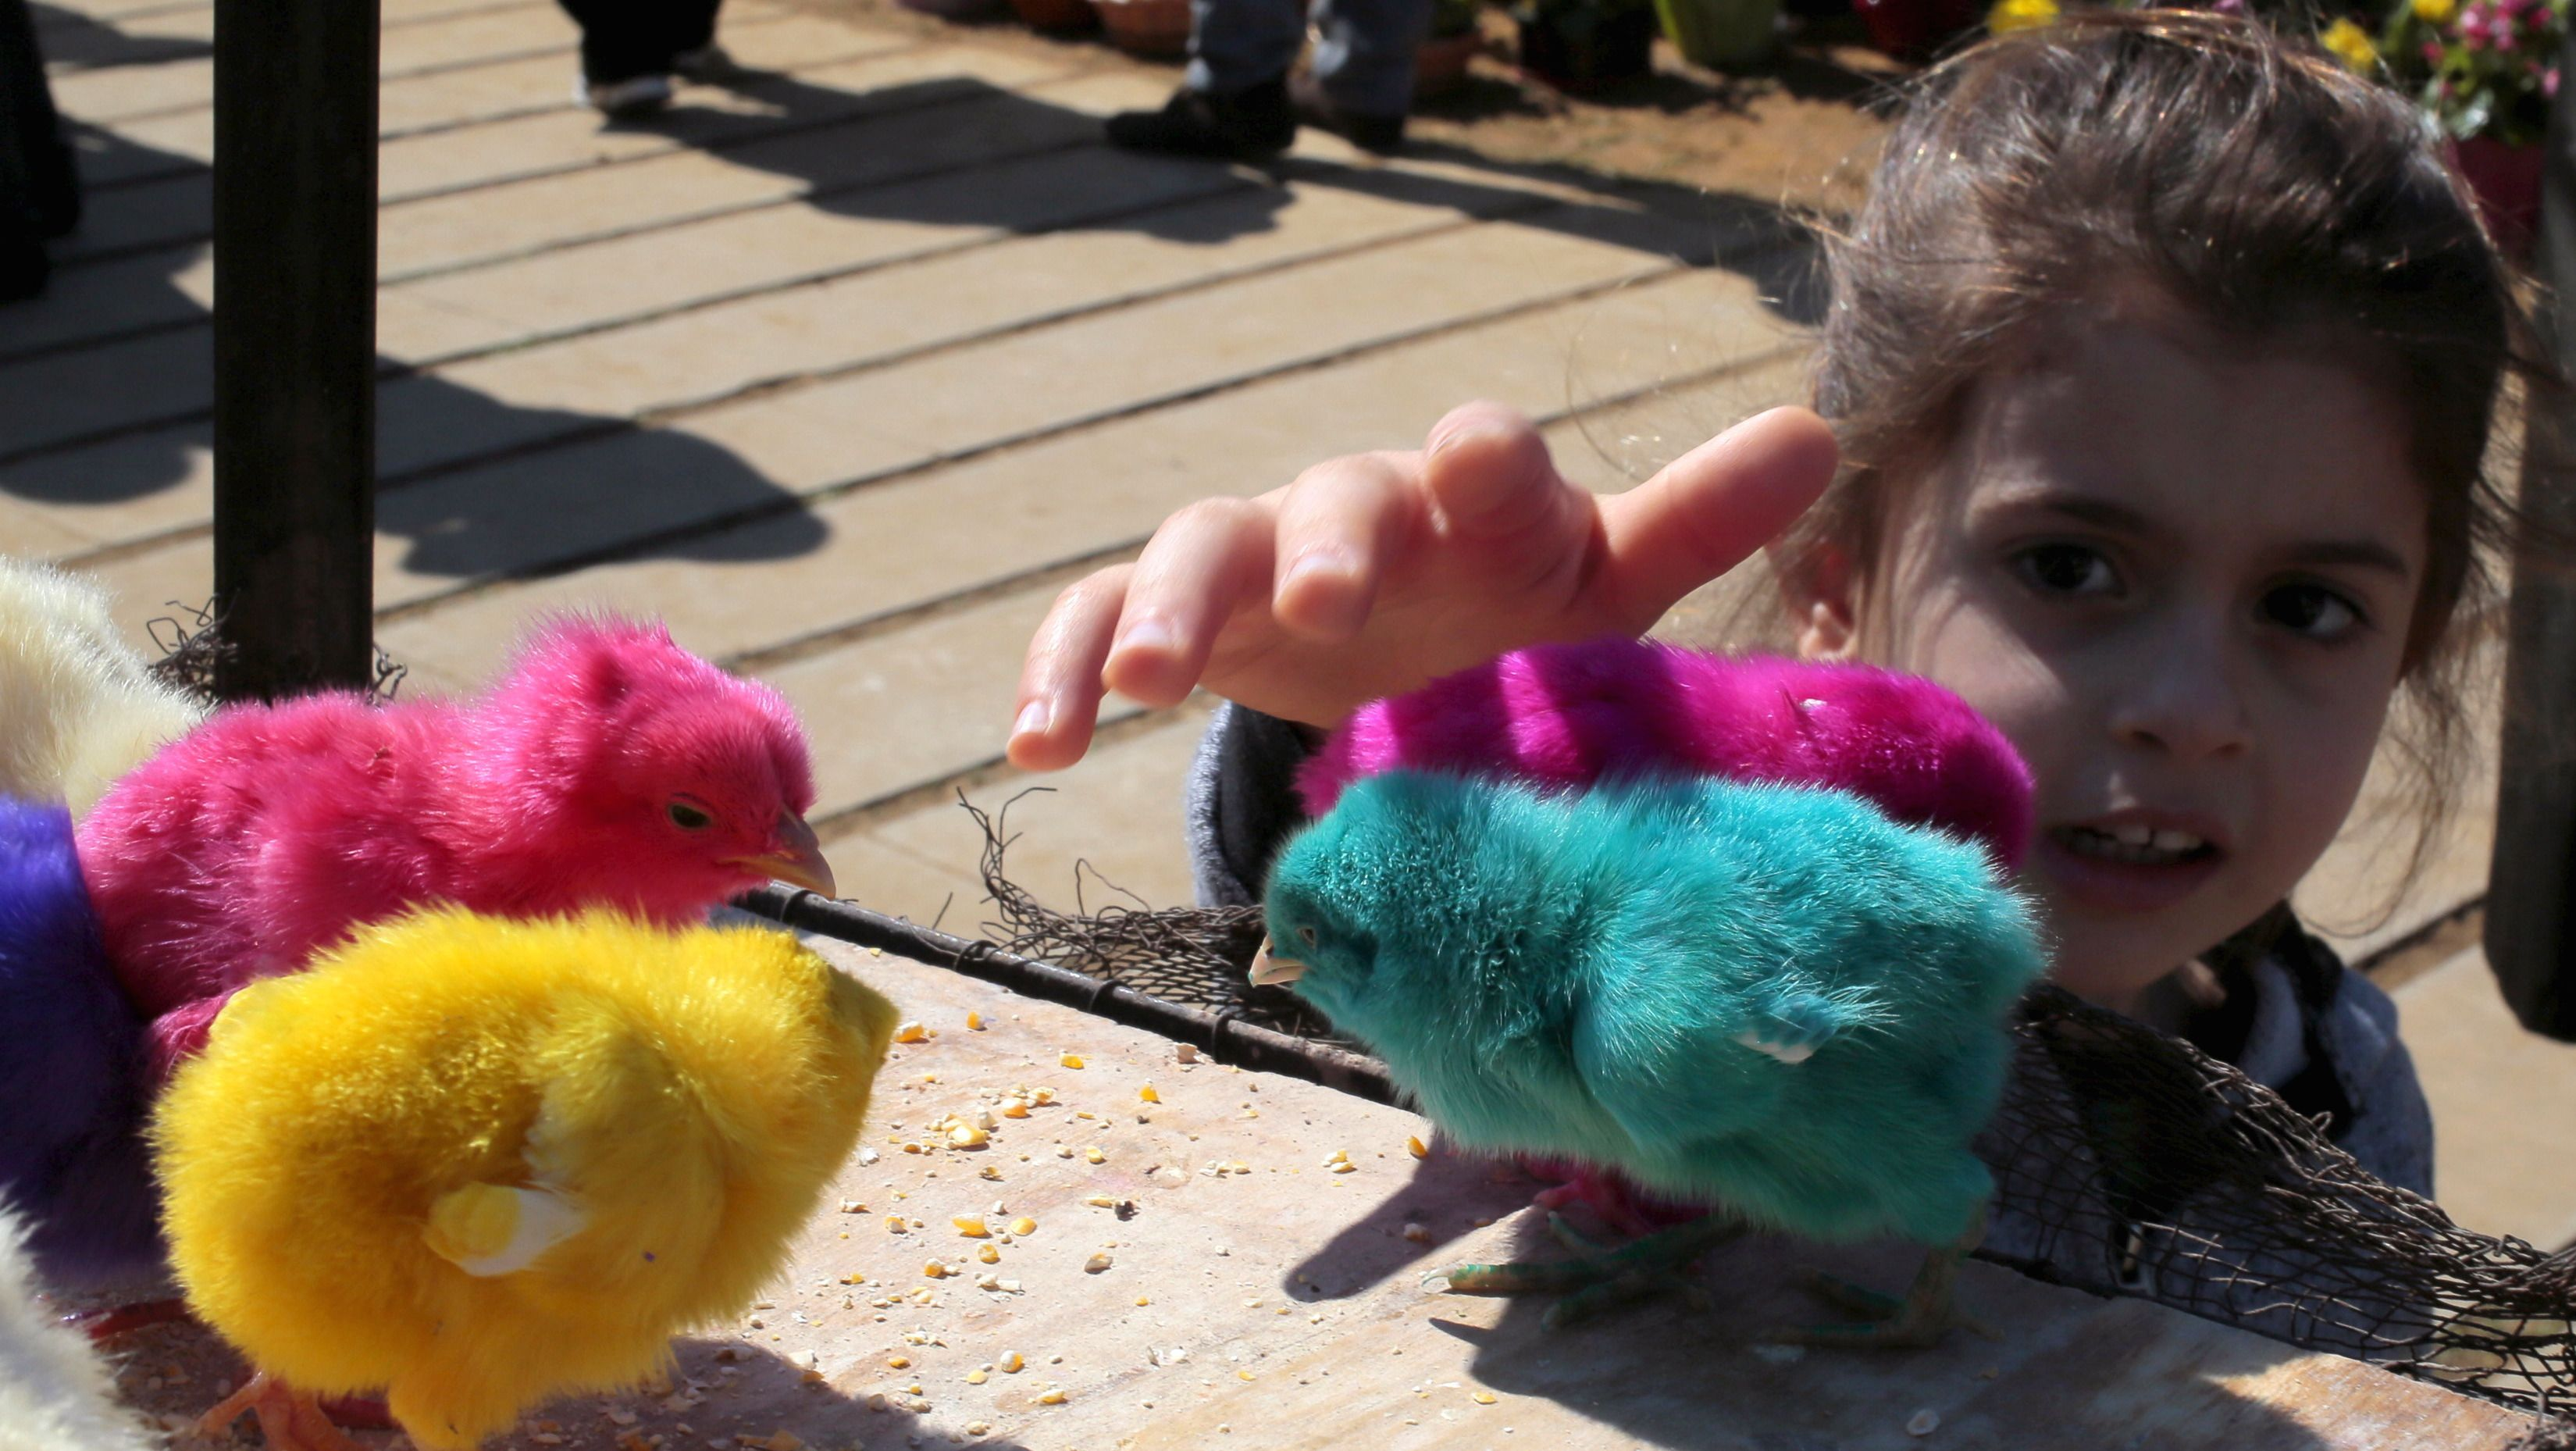 A girl plays with coloured chicks for sale prior to Easter celebrations in Byblos March 22, 2015.  REUTERS/Jamal Saidi - RTR4UEQC